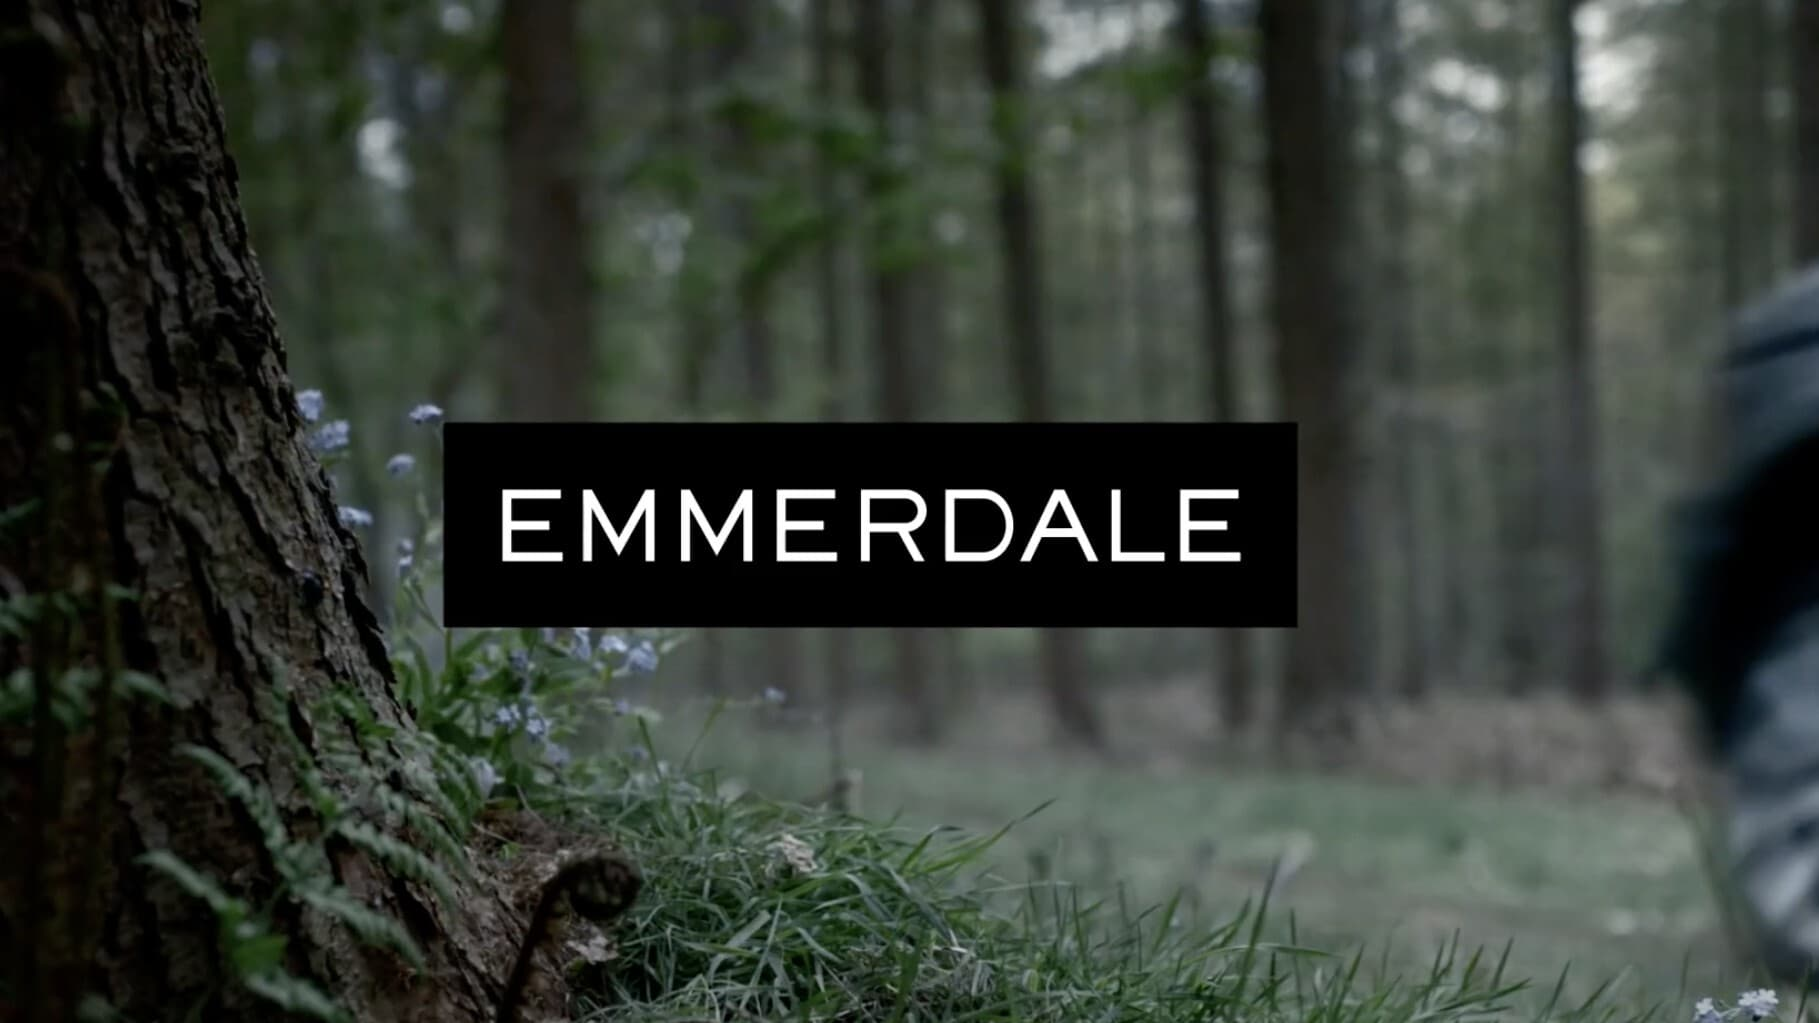 Emmerdale - Season 46 Episode 168 : Thursday 4th July 2019 (Part 1)